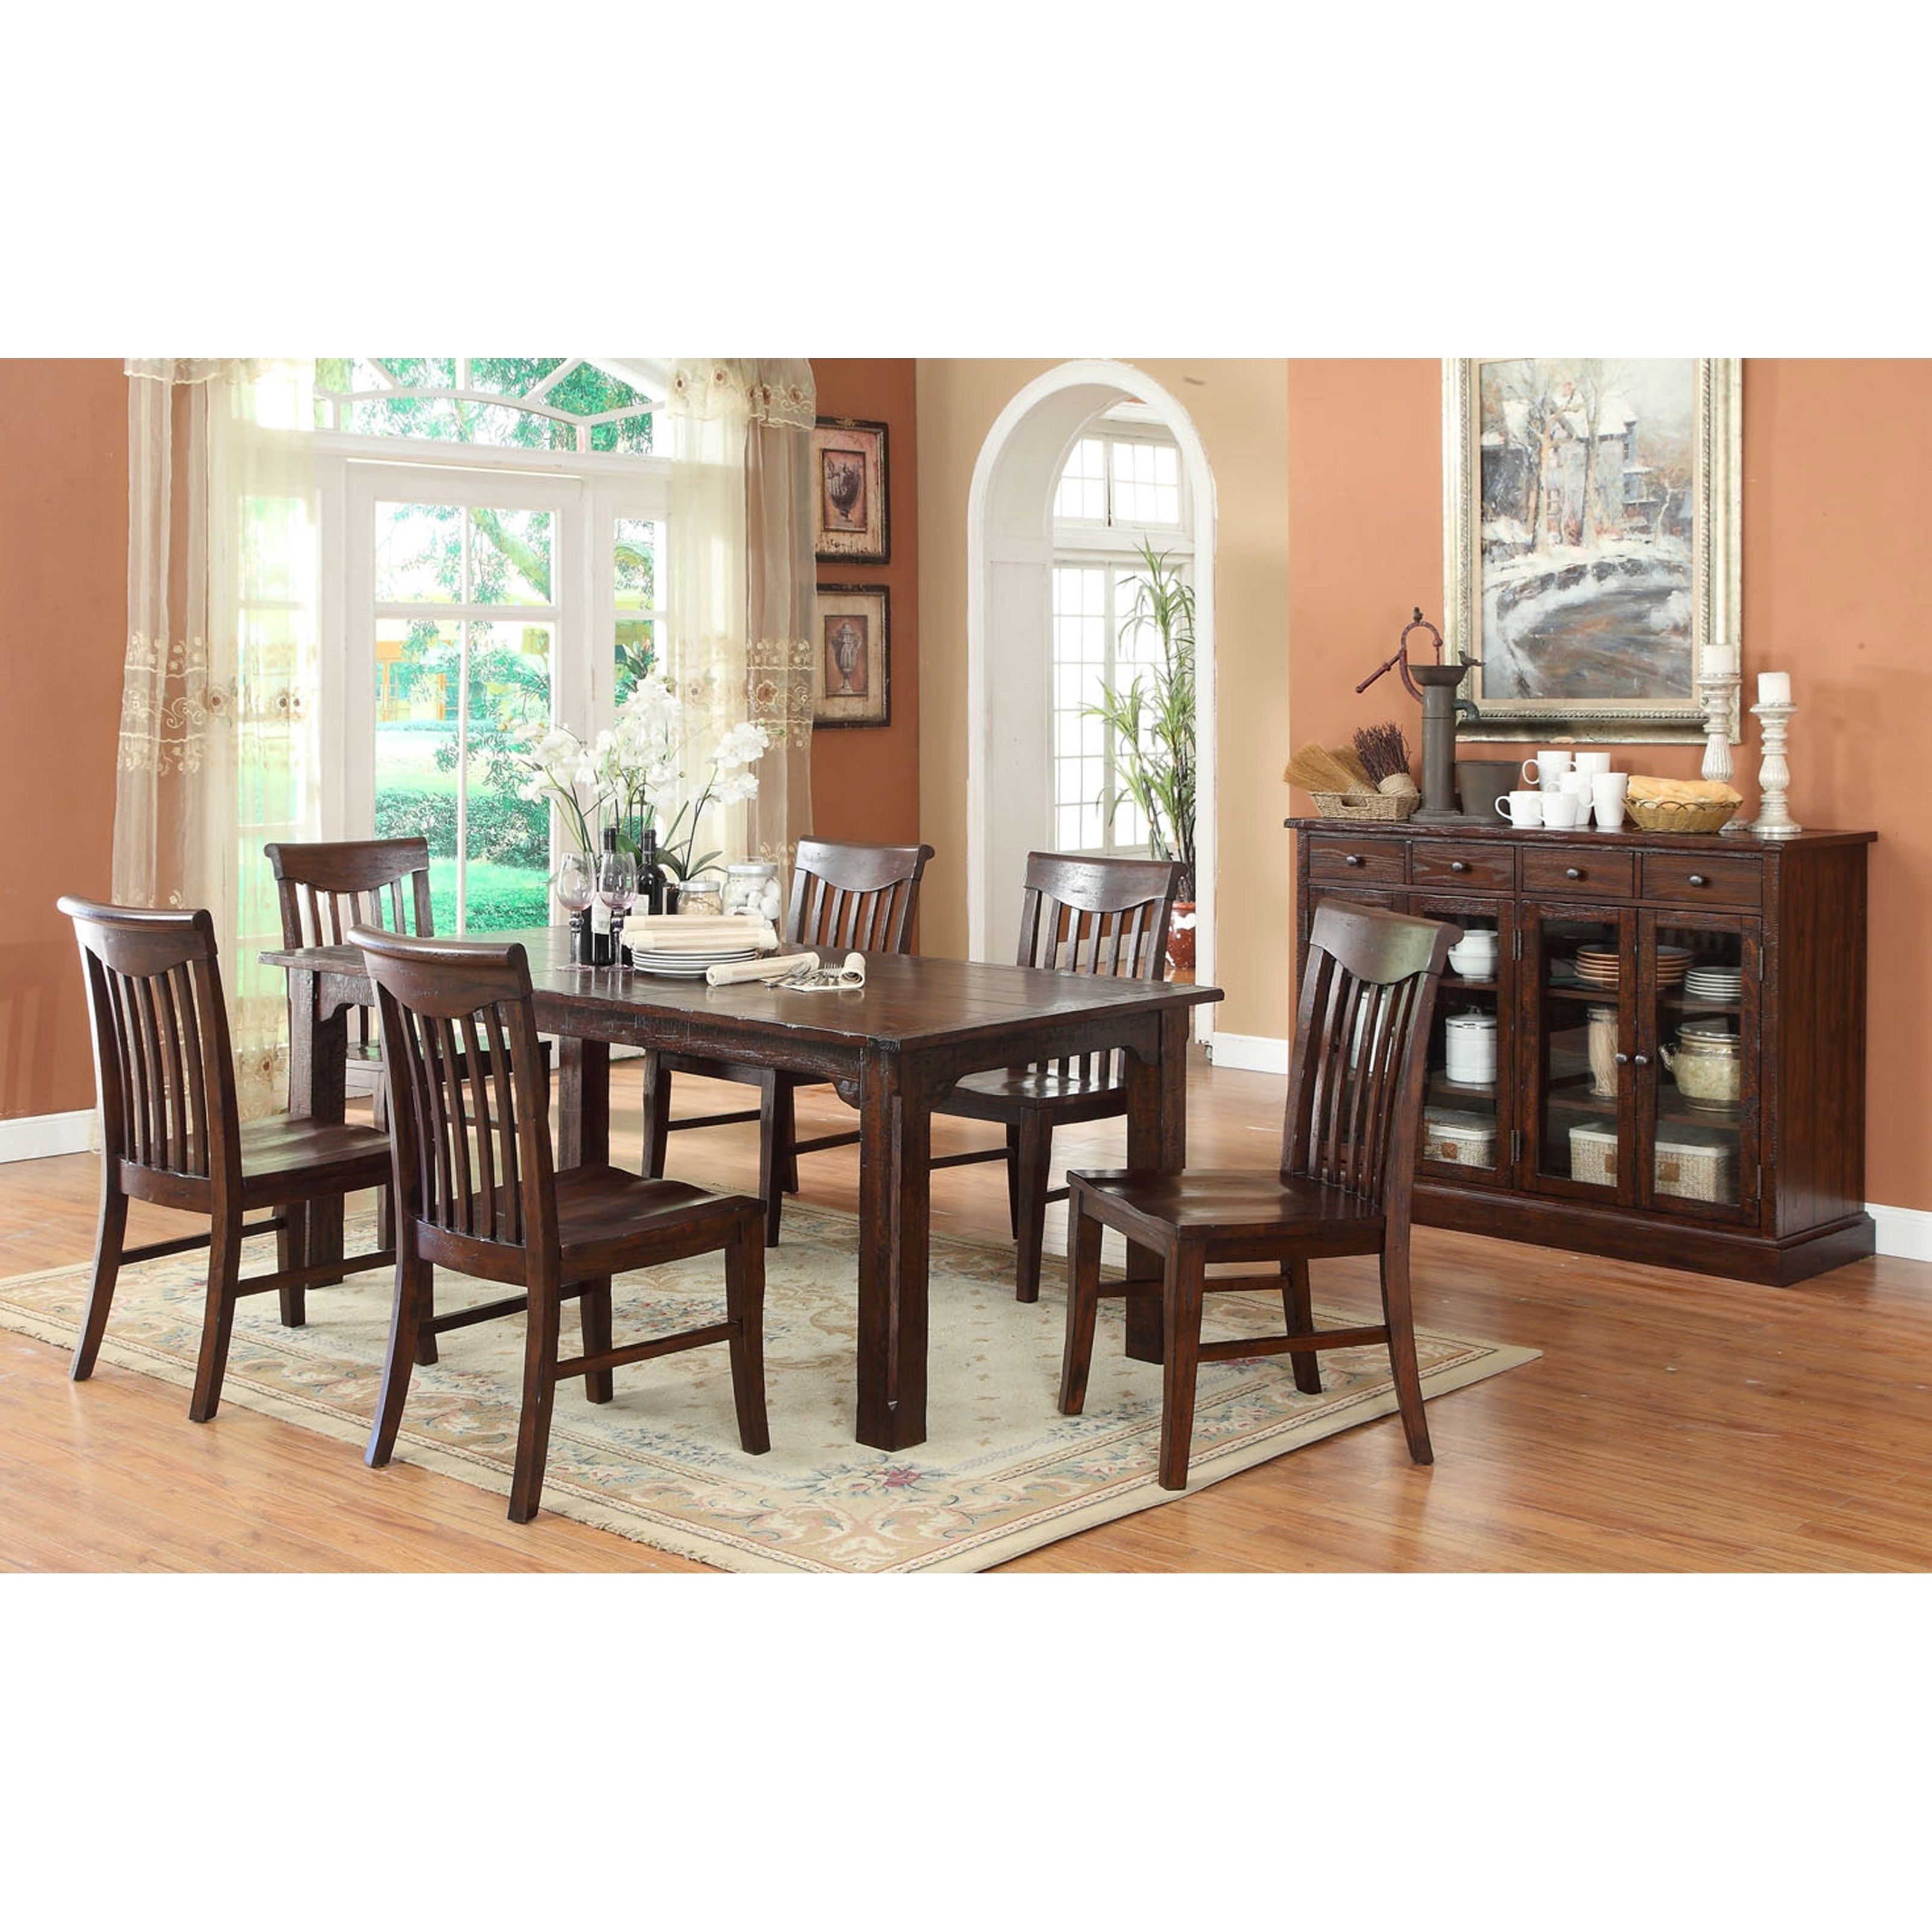 Gettysburg Dining Room Group  by E.C.I. Furniture at Northeast Factory Direct